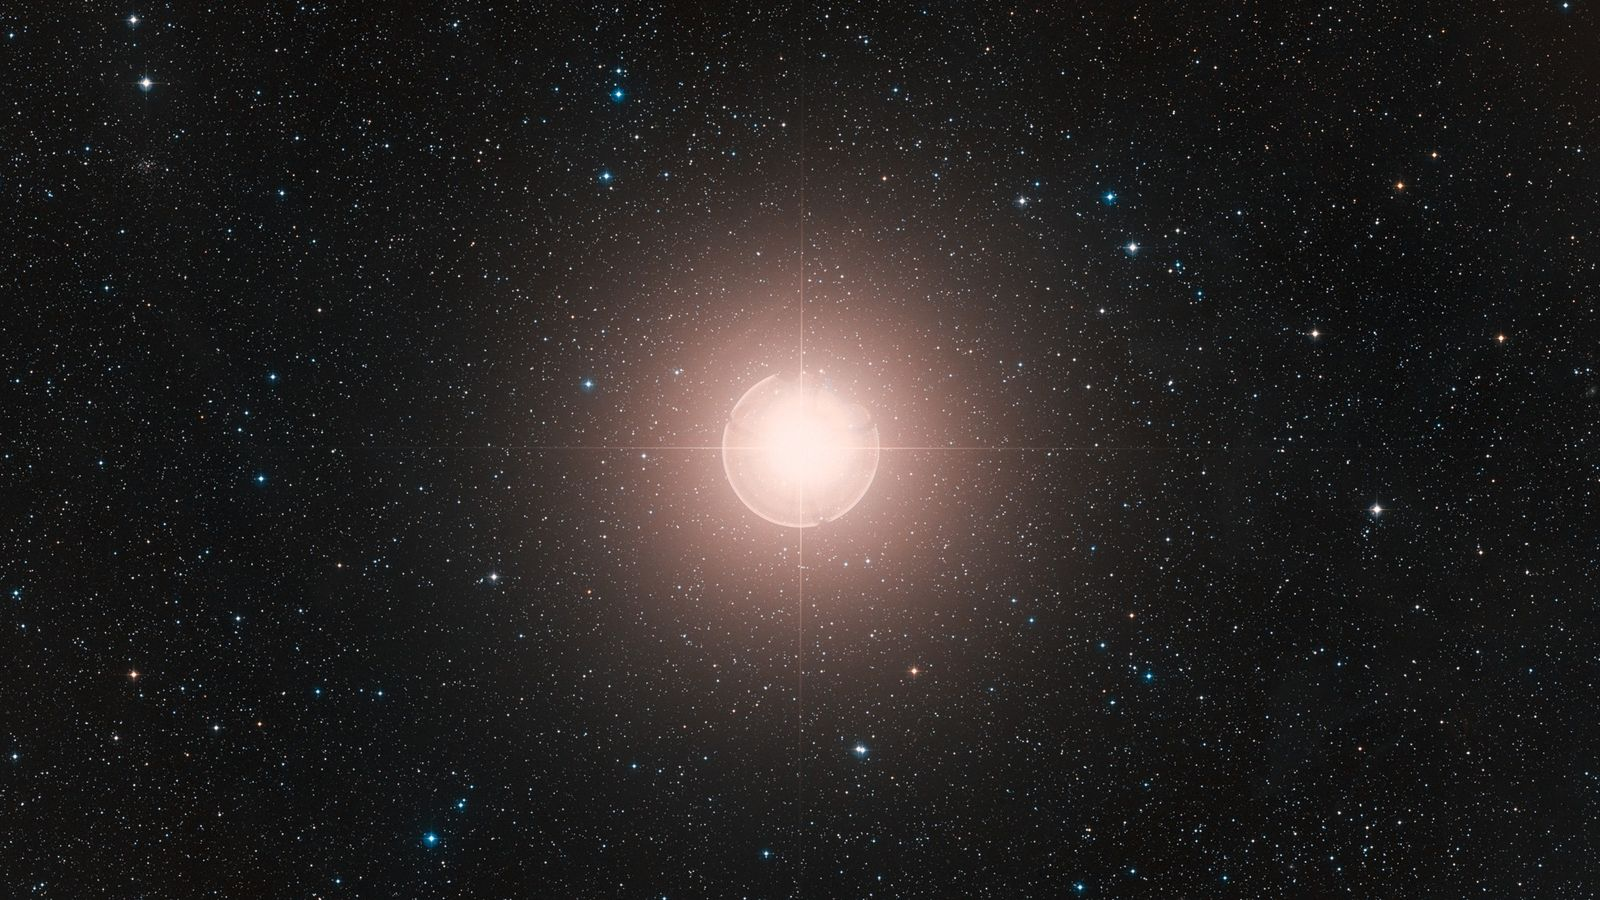 This image of Betelgeuse, one of the brightest stars in the sky, is a colour composite ...